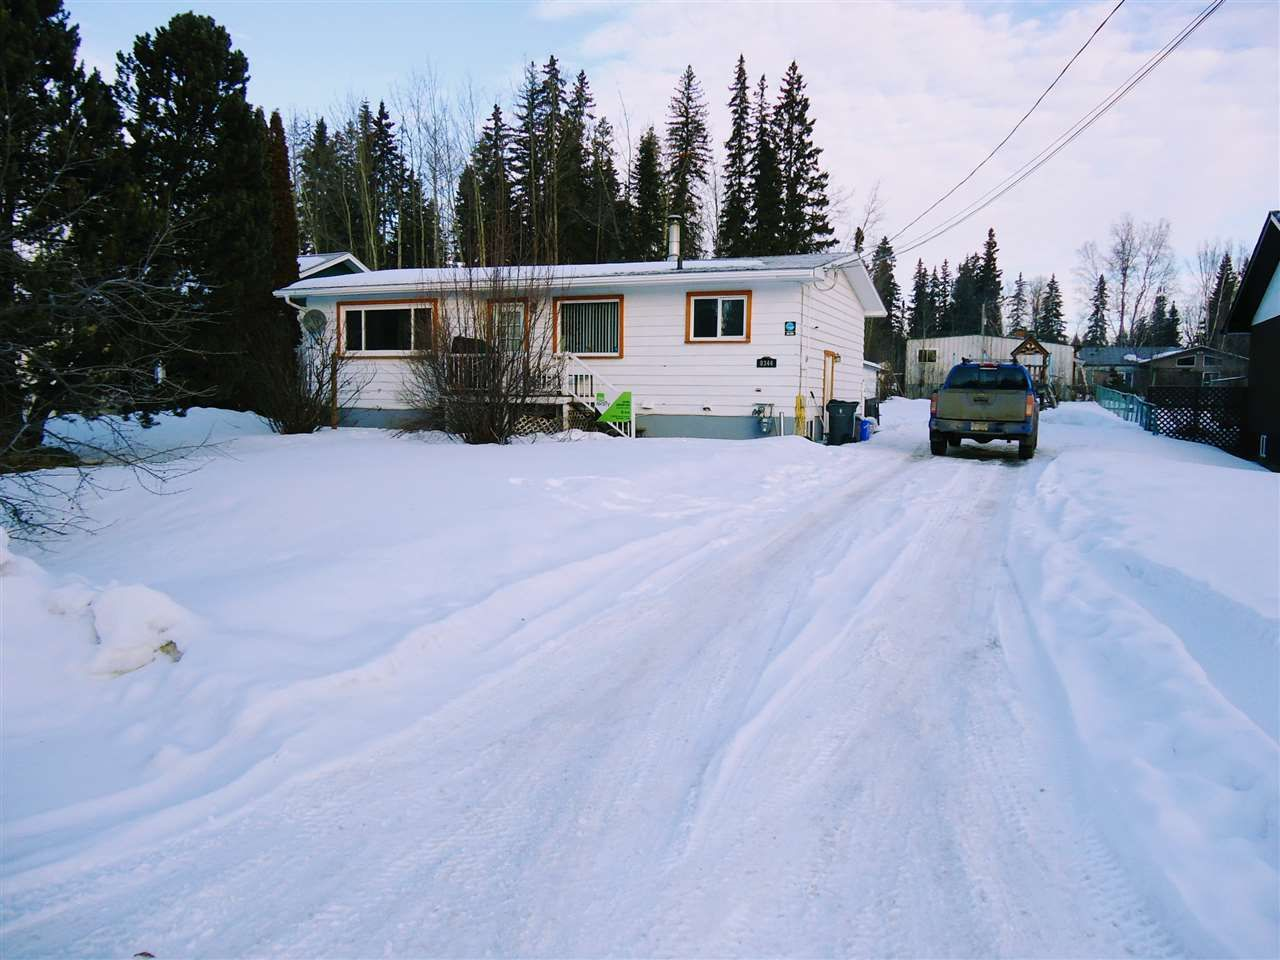 Main Photo: 8344 CINCH Loop in Prince George: Western Acres House for sale (PG City South (Zone 74))  : MLS®# R2337387